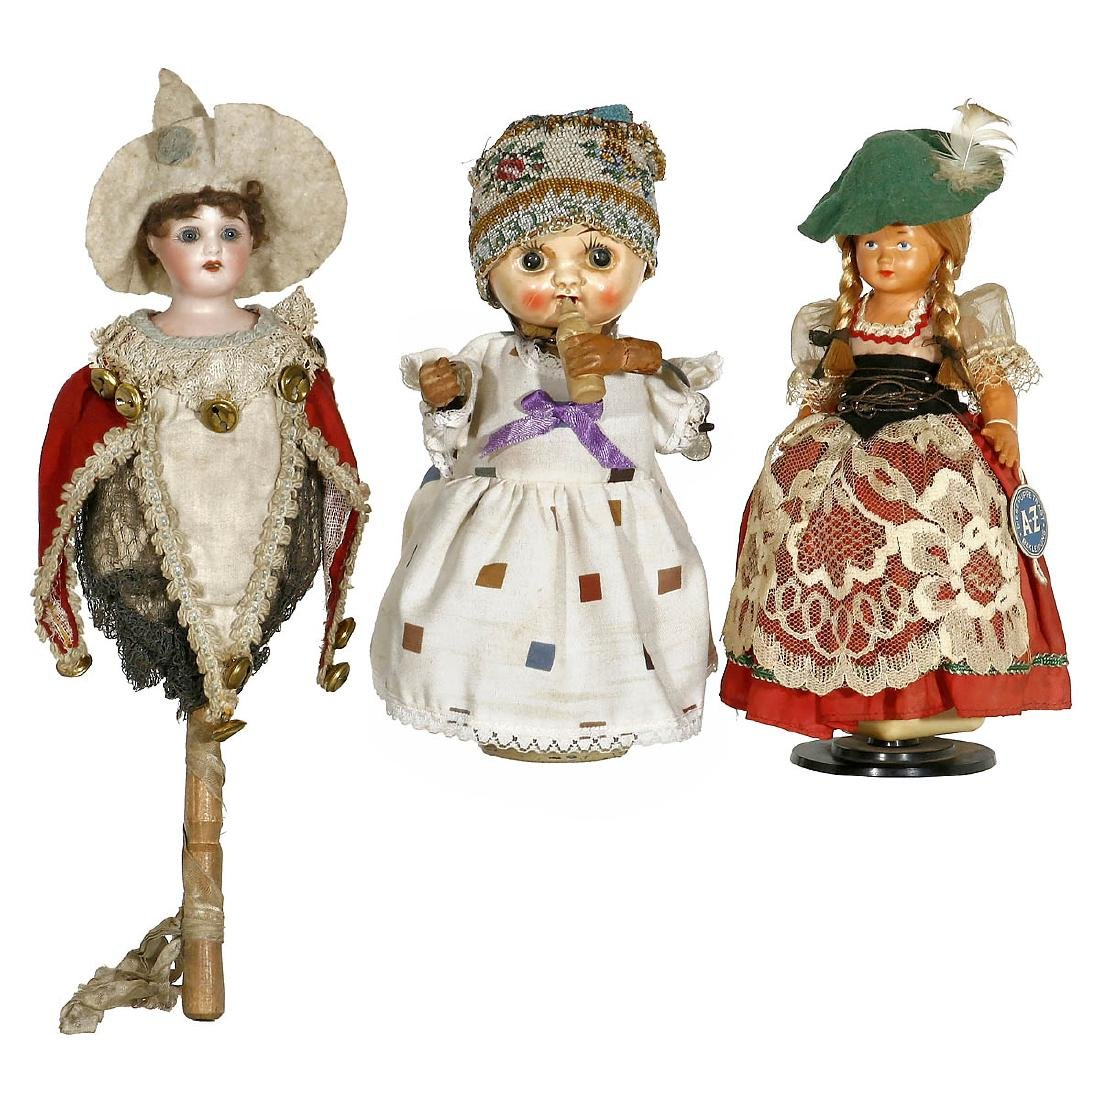 3 Musical Dolls, 19th and 20th Century